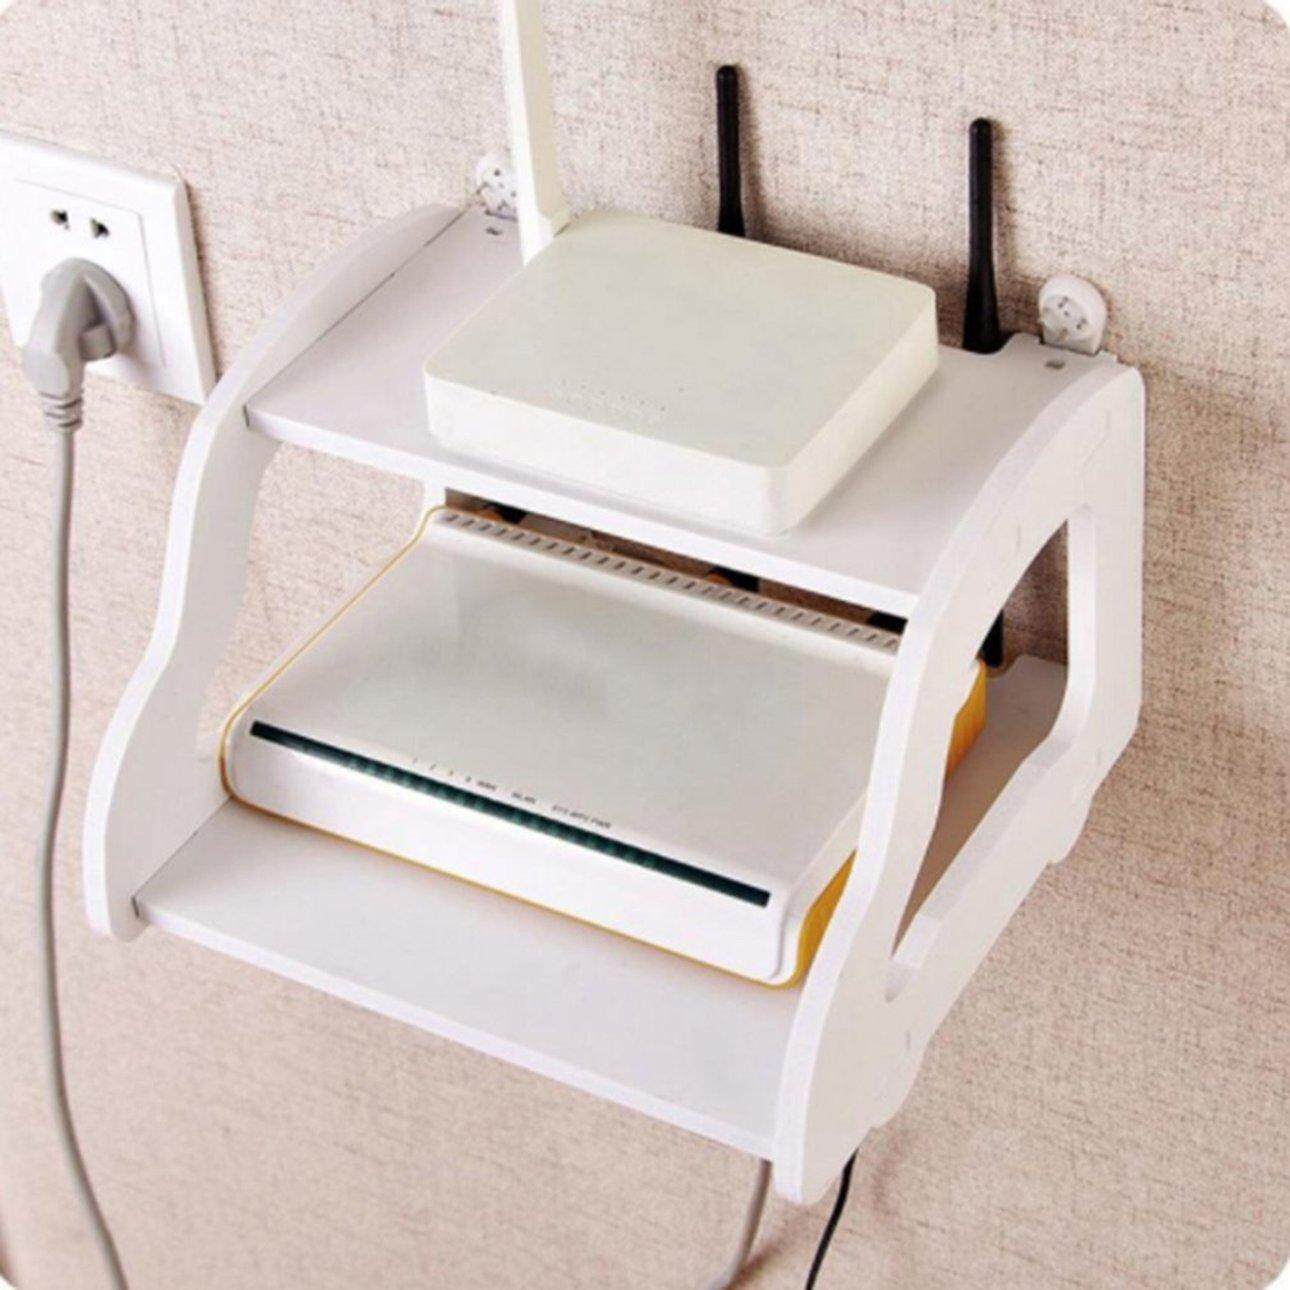 Best Sellers White Storage Decorative Wall Shelf Wifi Router Box Car Shaped Punch Free